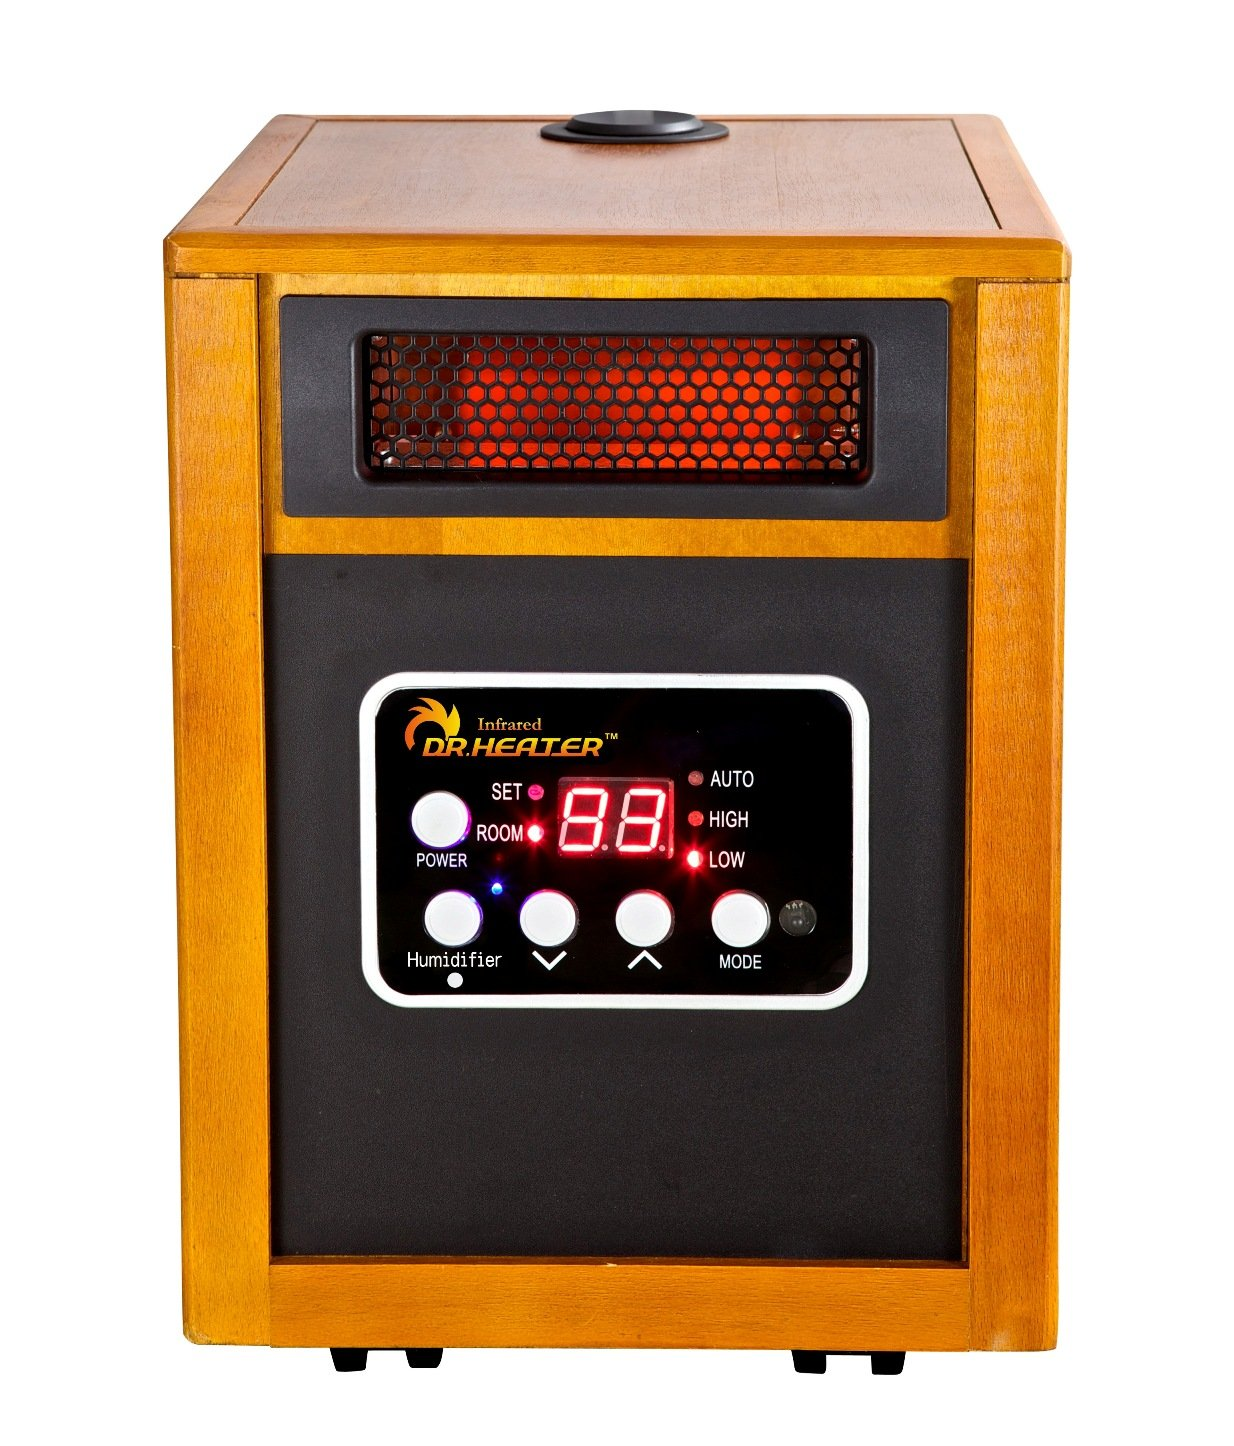 2. Dr. Infrared Heater Portable Space Heater with Humidifier